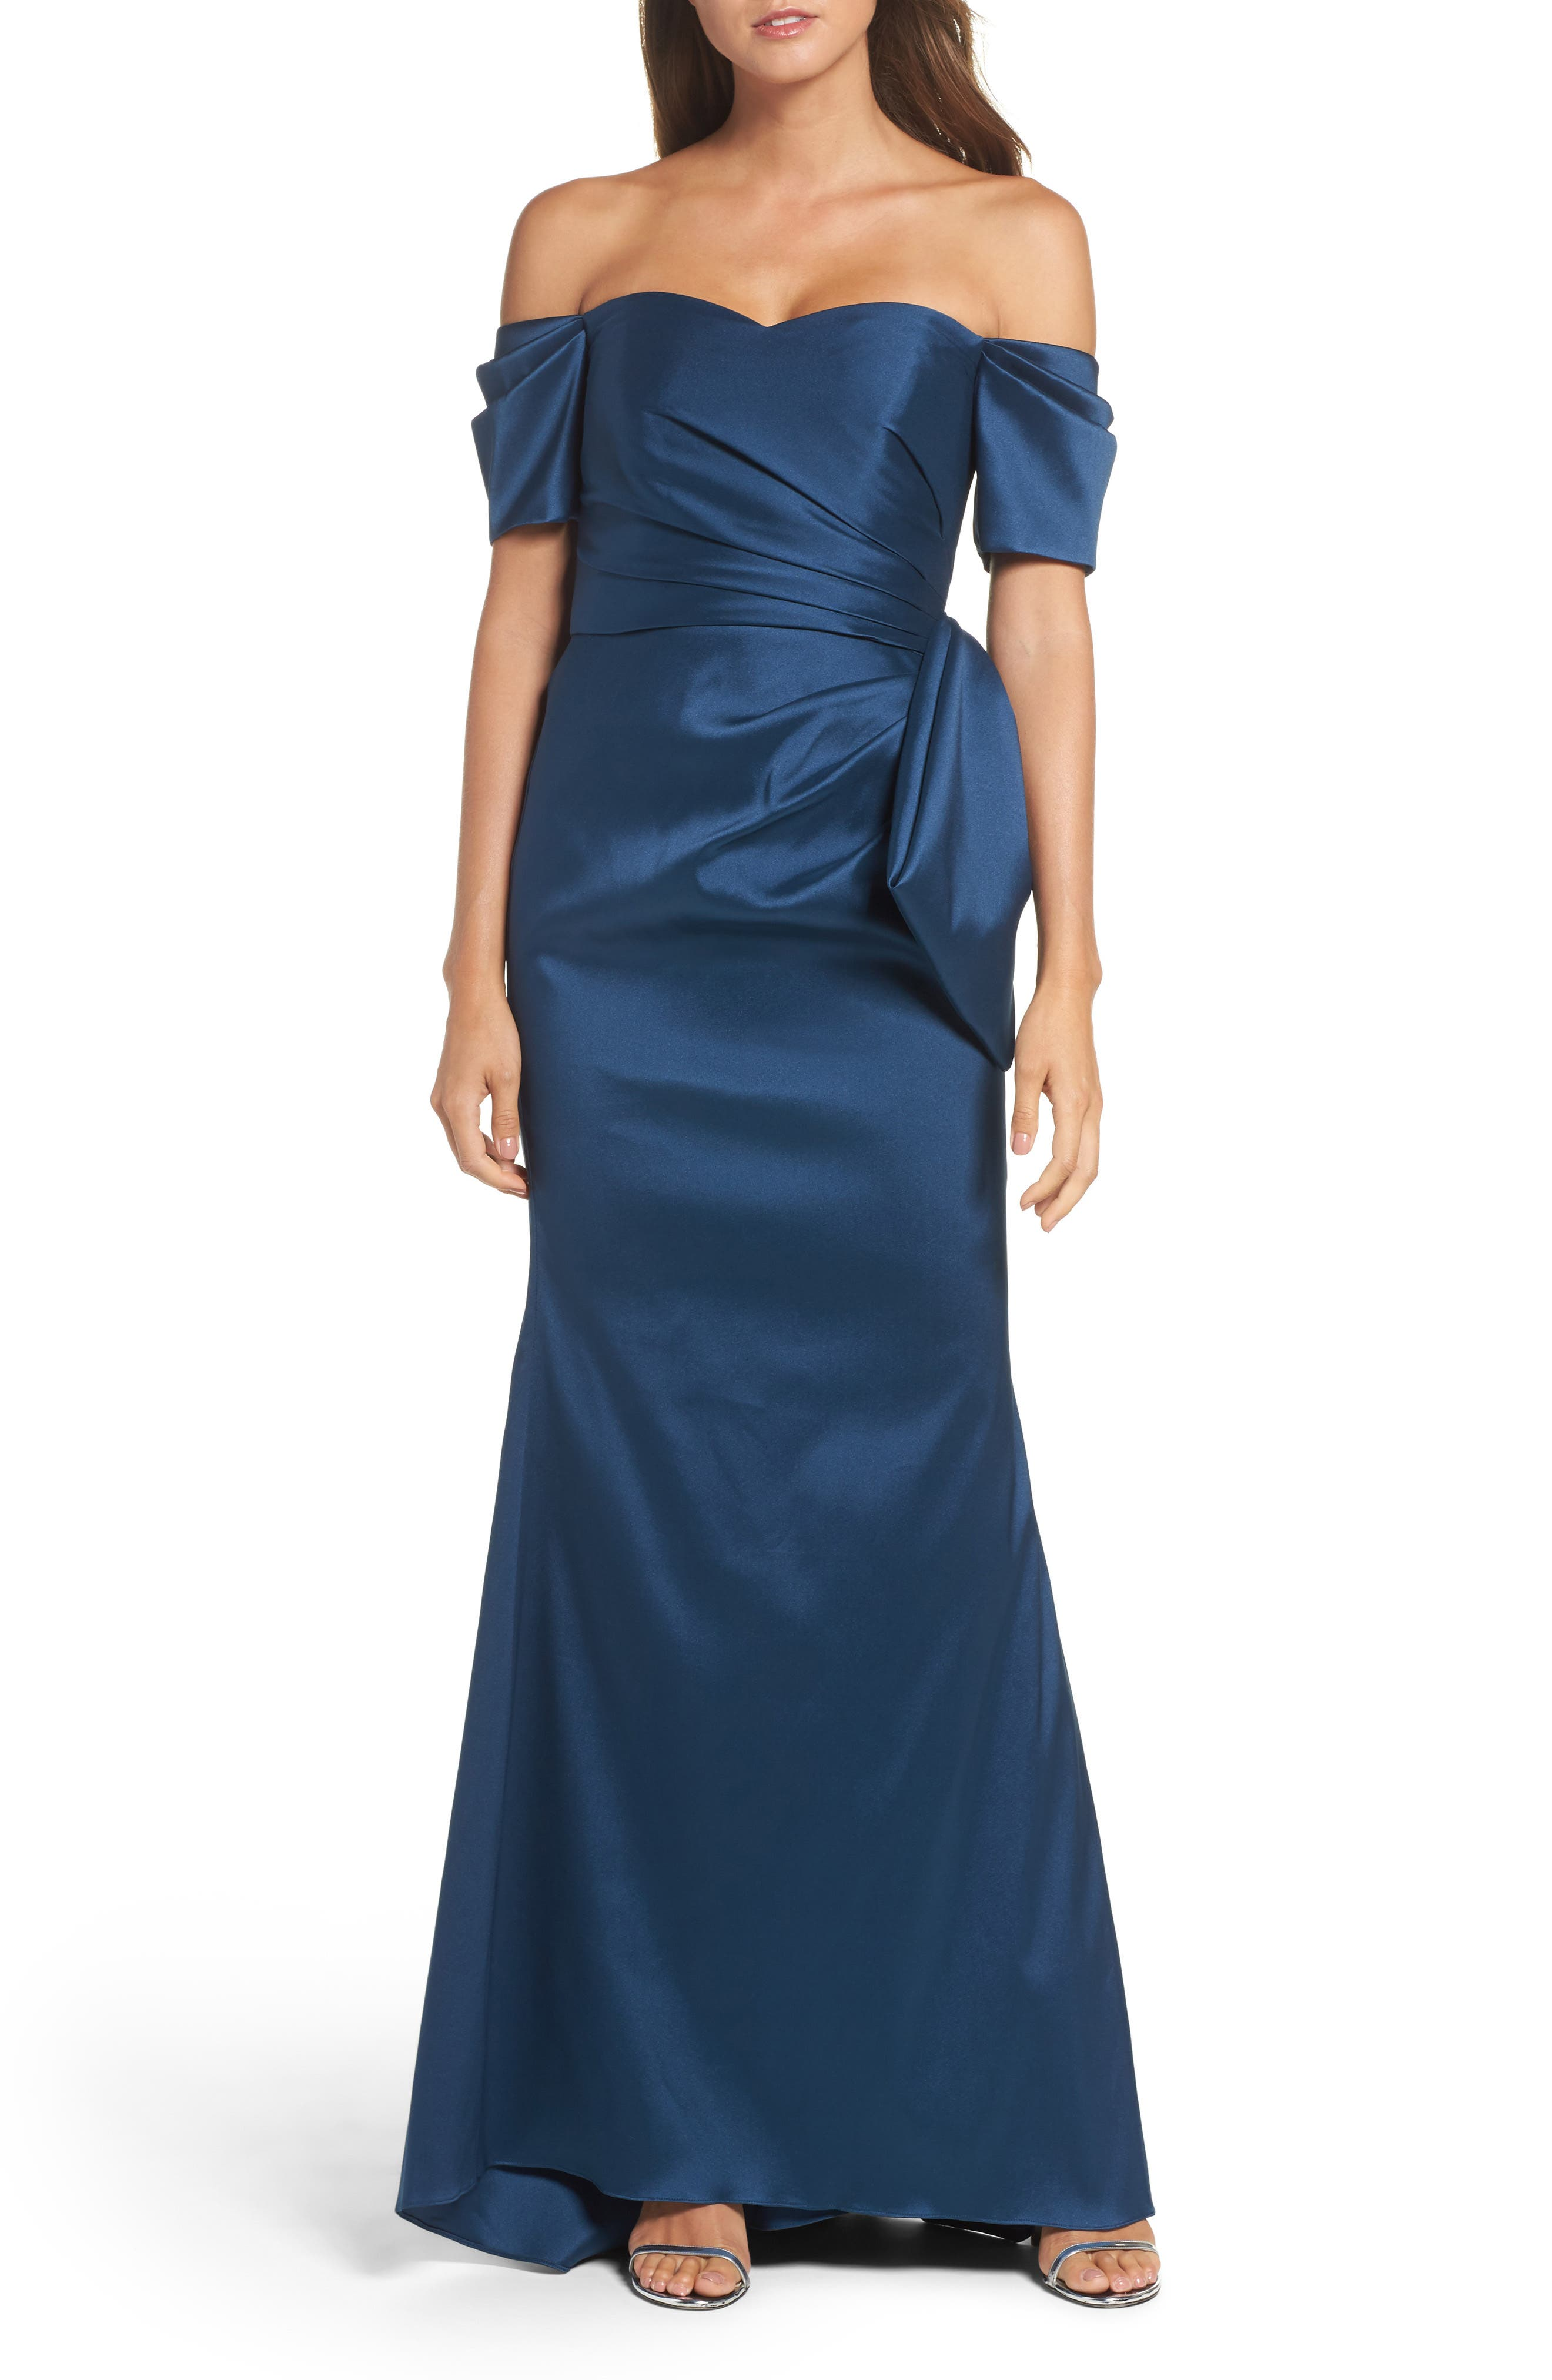 Badgley Mischka Bow Back Off the Shoulder Gown